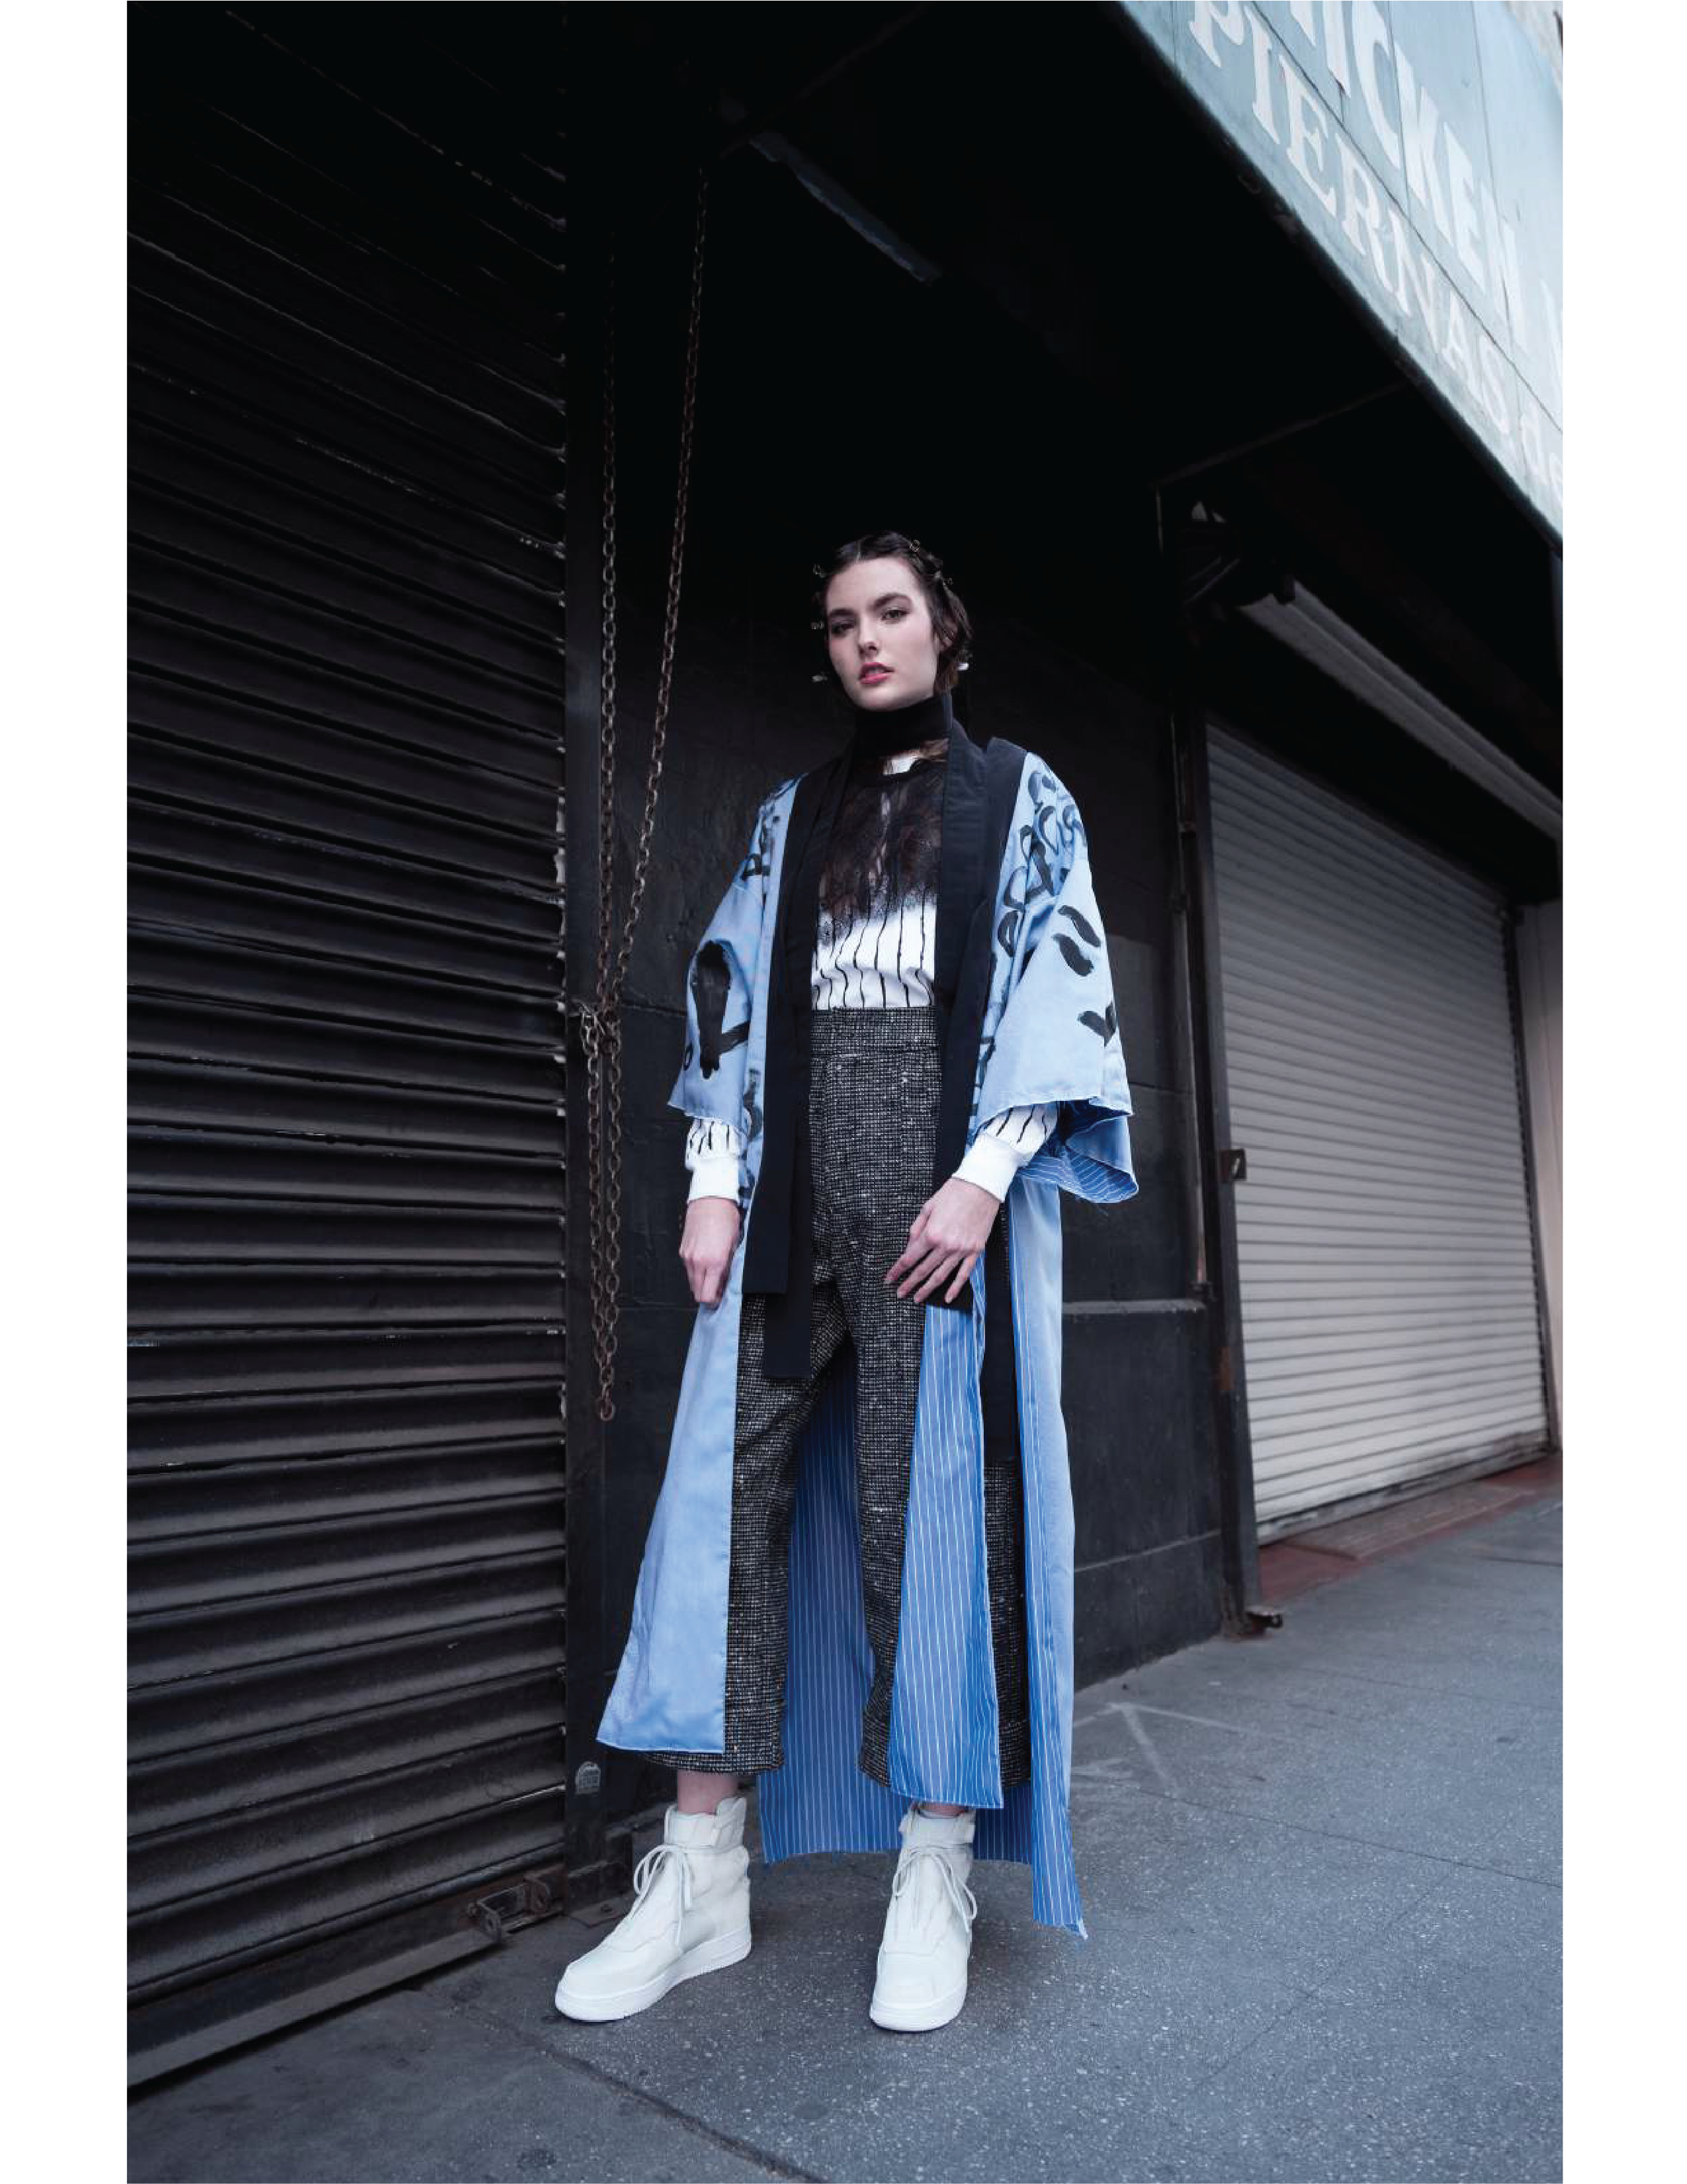 PAPER MACHINE FW 18 LOOK BOOK. IMAGE 7